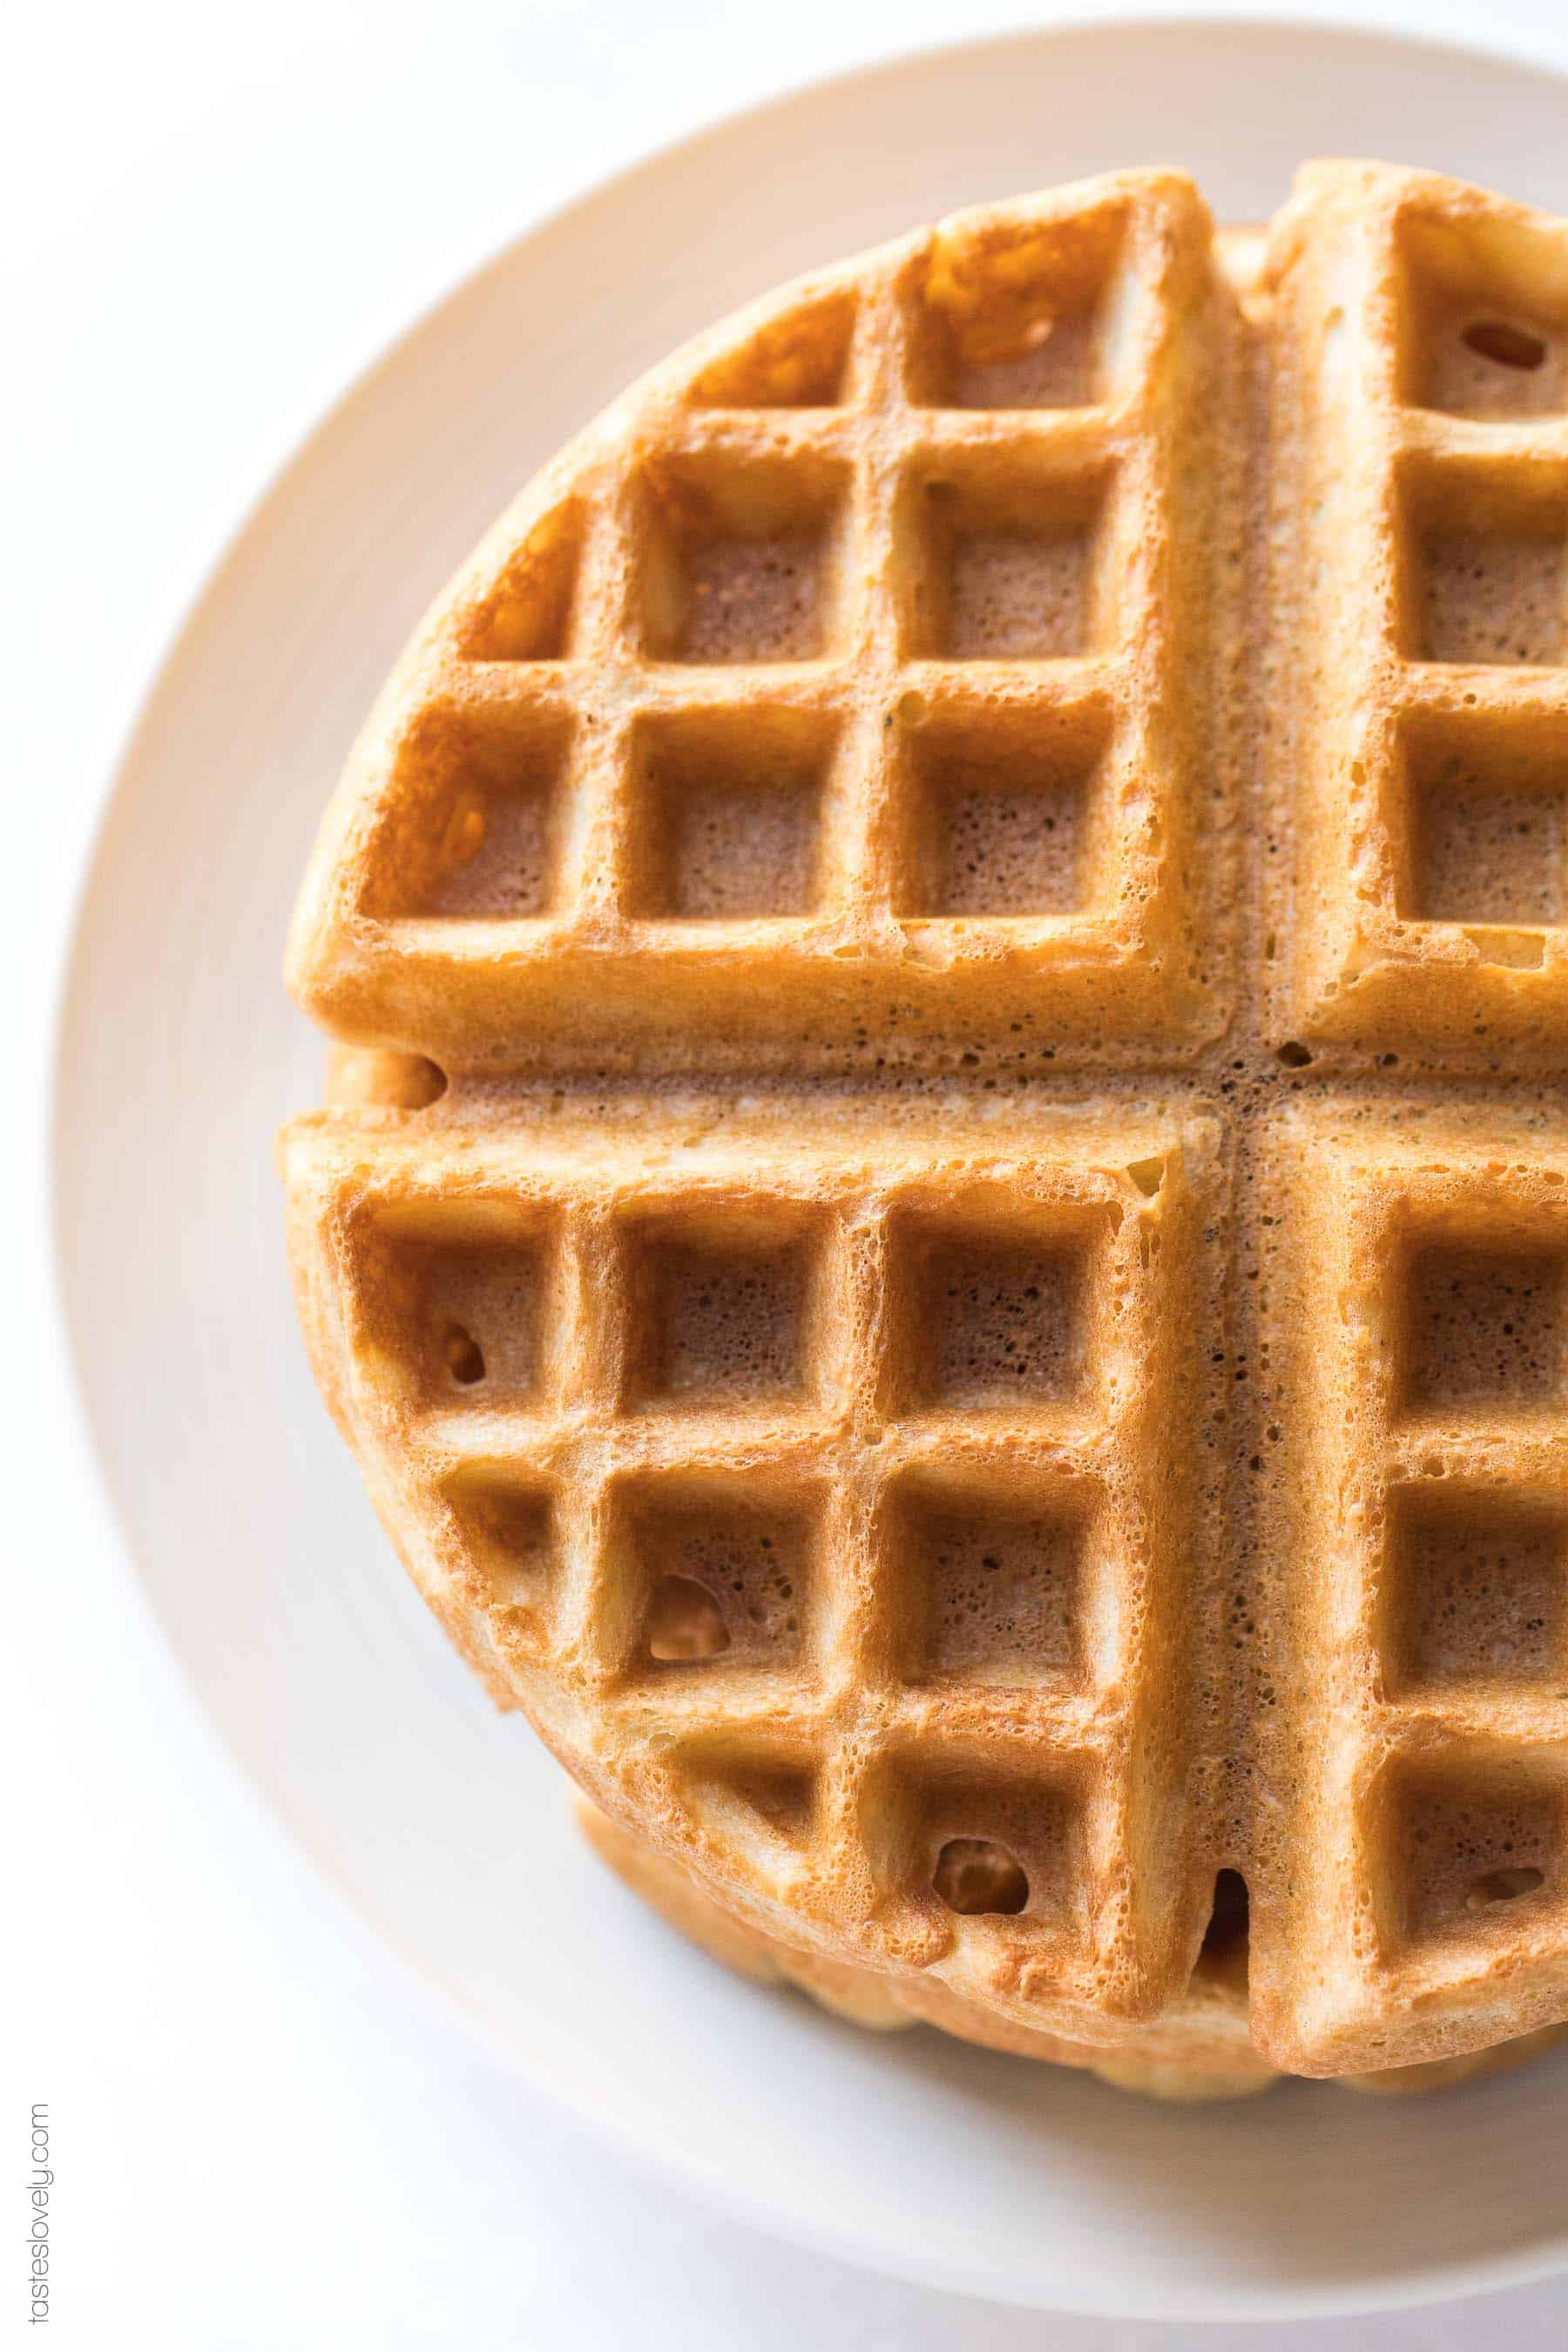 Crispy Paleo Waffles - the most delicious and crispy waffle recipe ever! You'd never guess these were paleo, gluten free, dairy free and refined sugar free!